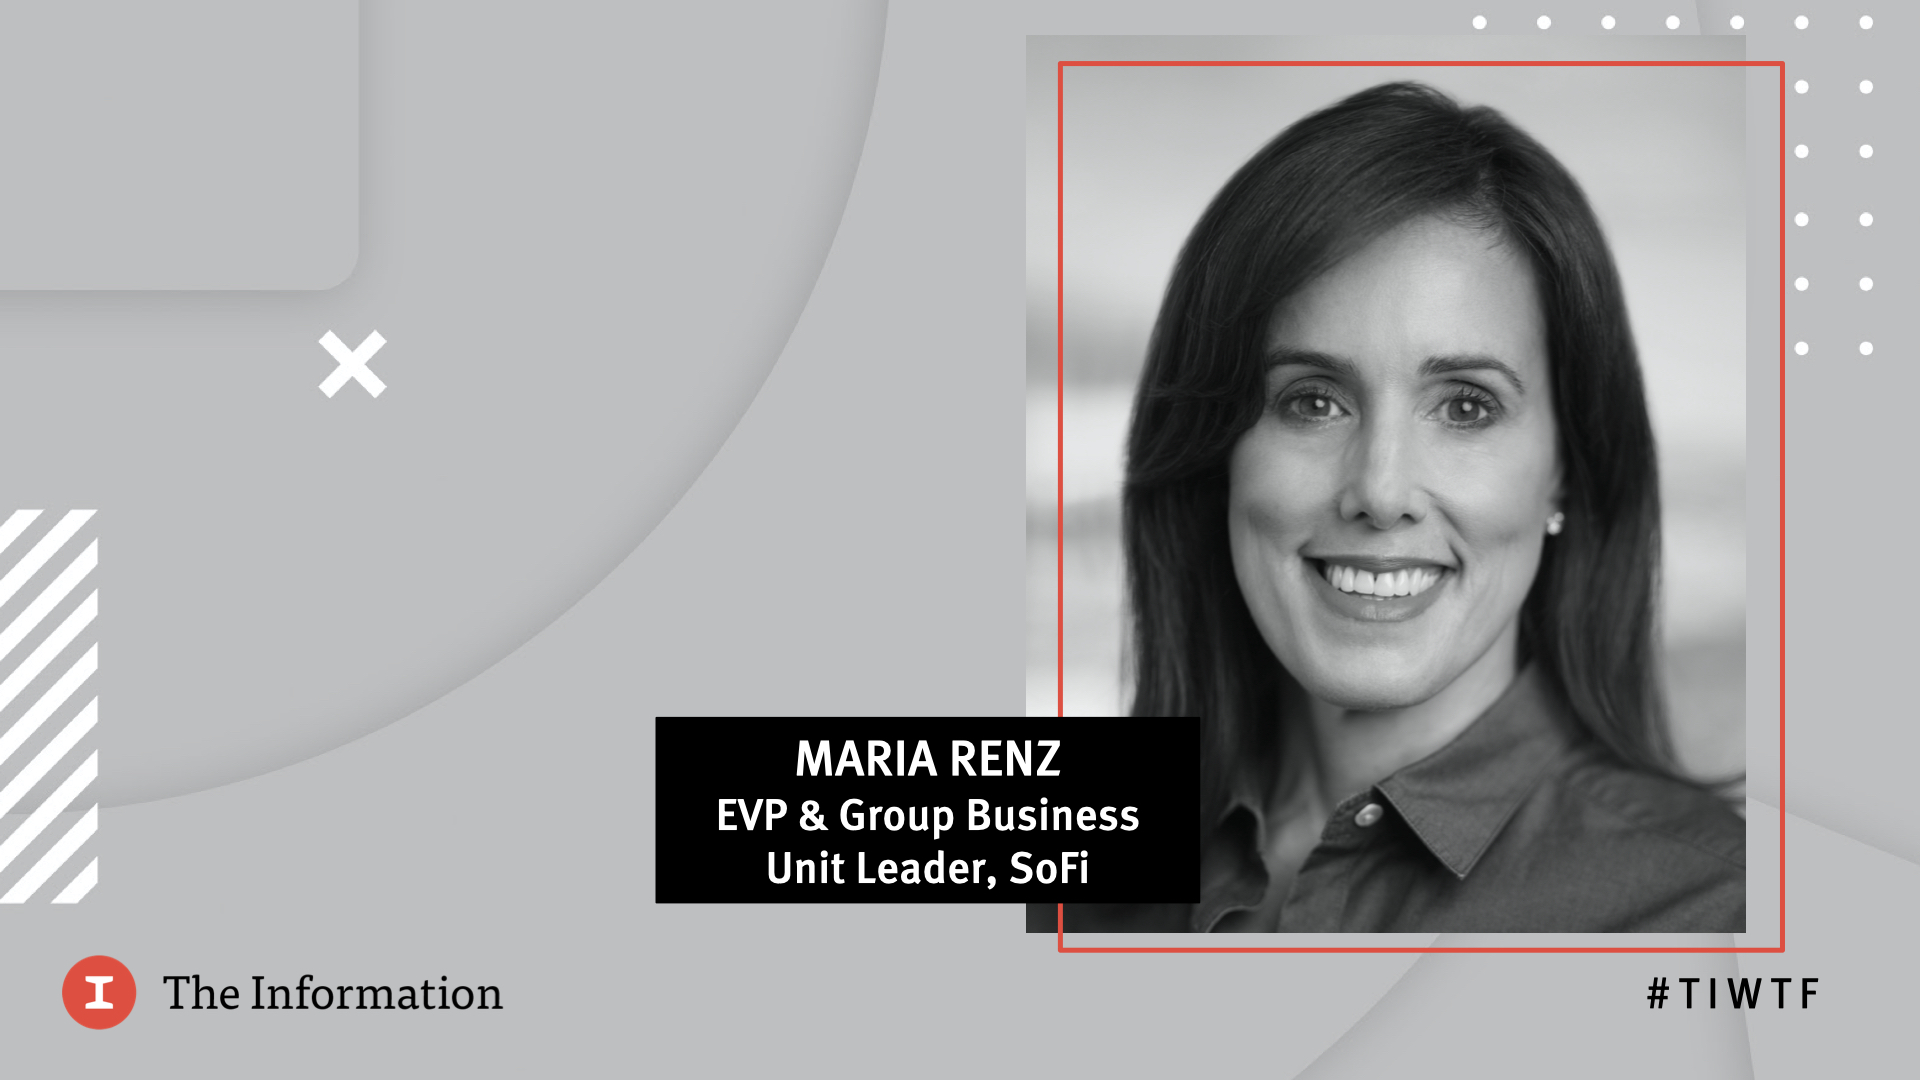 WTF 2020 - SoFi's EVP & Group Business Unit Leader Maria Renz in conversation with Jessica Lessin, Founder & CEO of The Information